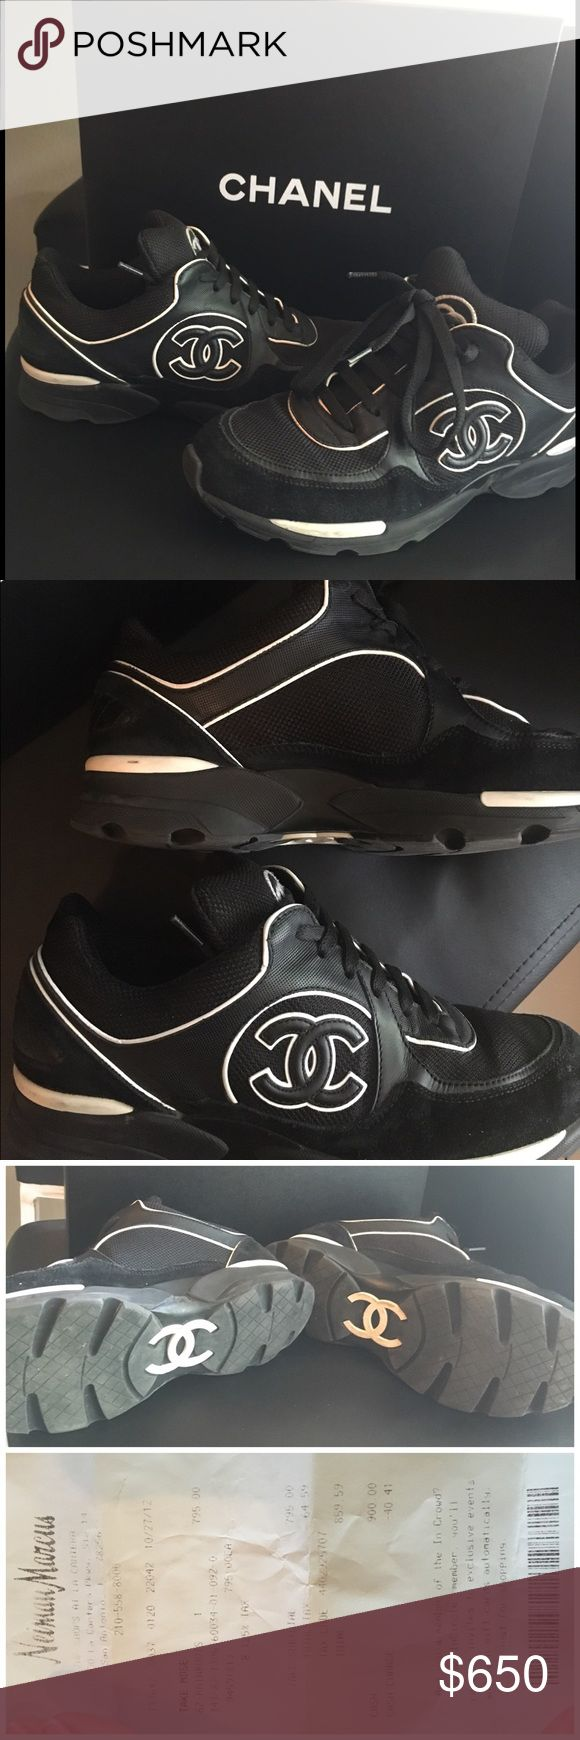 Chanel Tennis shoes authentic Great condition (Auth) Chanel Tennis shoes. Bought them them at Neiman Marcus, box and receipt included. (I have to look for the dust bag though) small mark on the shoe see seconds picture. Worn only 4-5 times since purchase. Hard to find! I am pregnant so my feet are swollen, I can't try them on. NO TRADES, please use offer button! CHANEL Shoes Sneakers